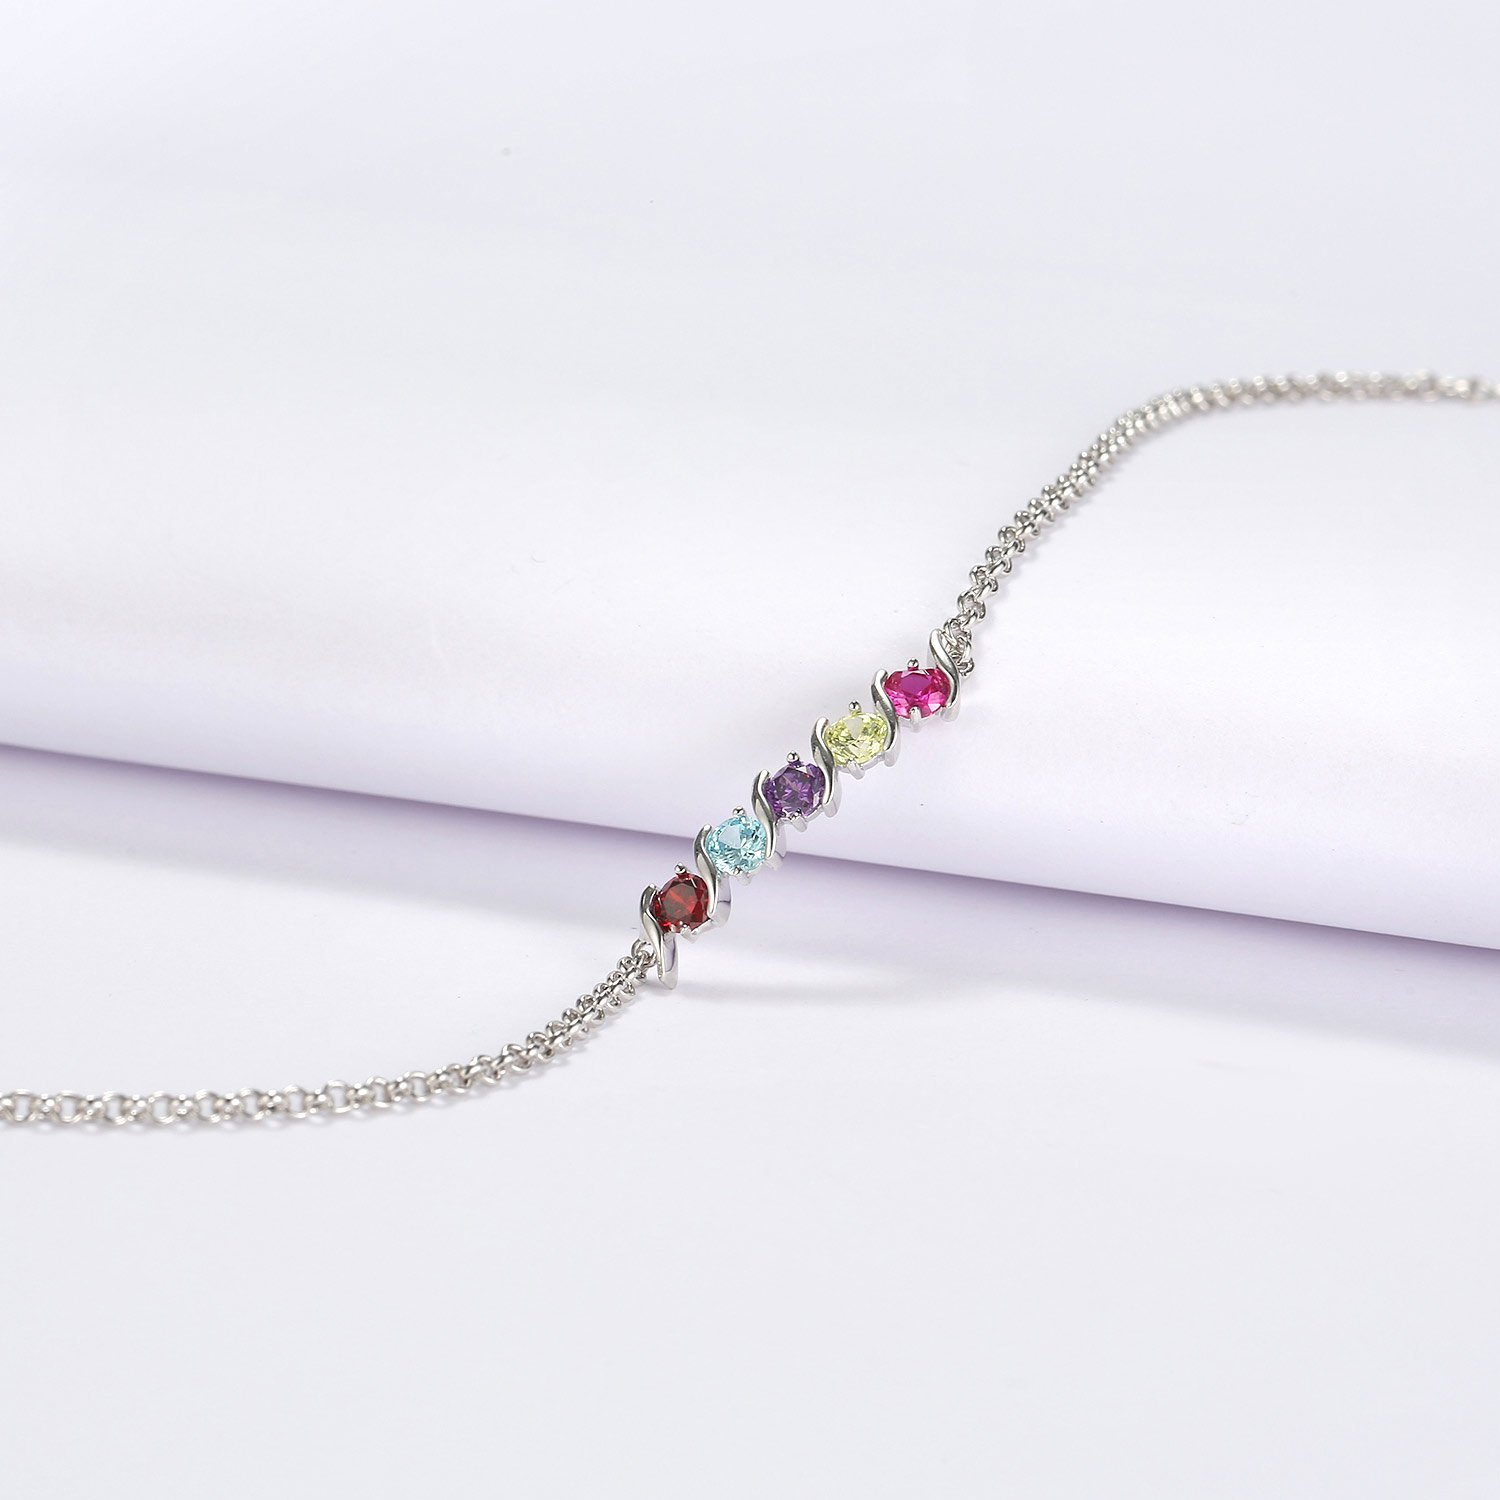 Caperci 925 Sterling Silver Round Shaped Multi-Gemstones Adjustable Link Tennis Bracelet for Women by Caperci (Image #2)